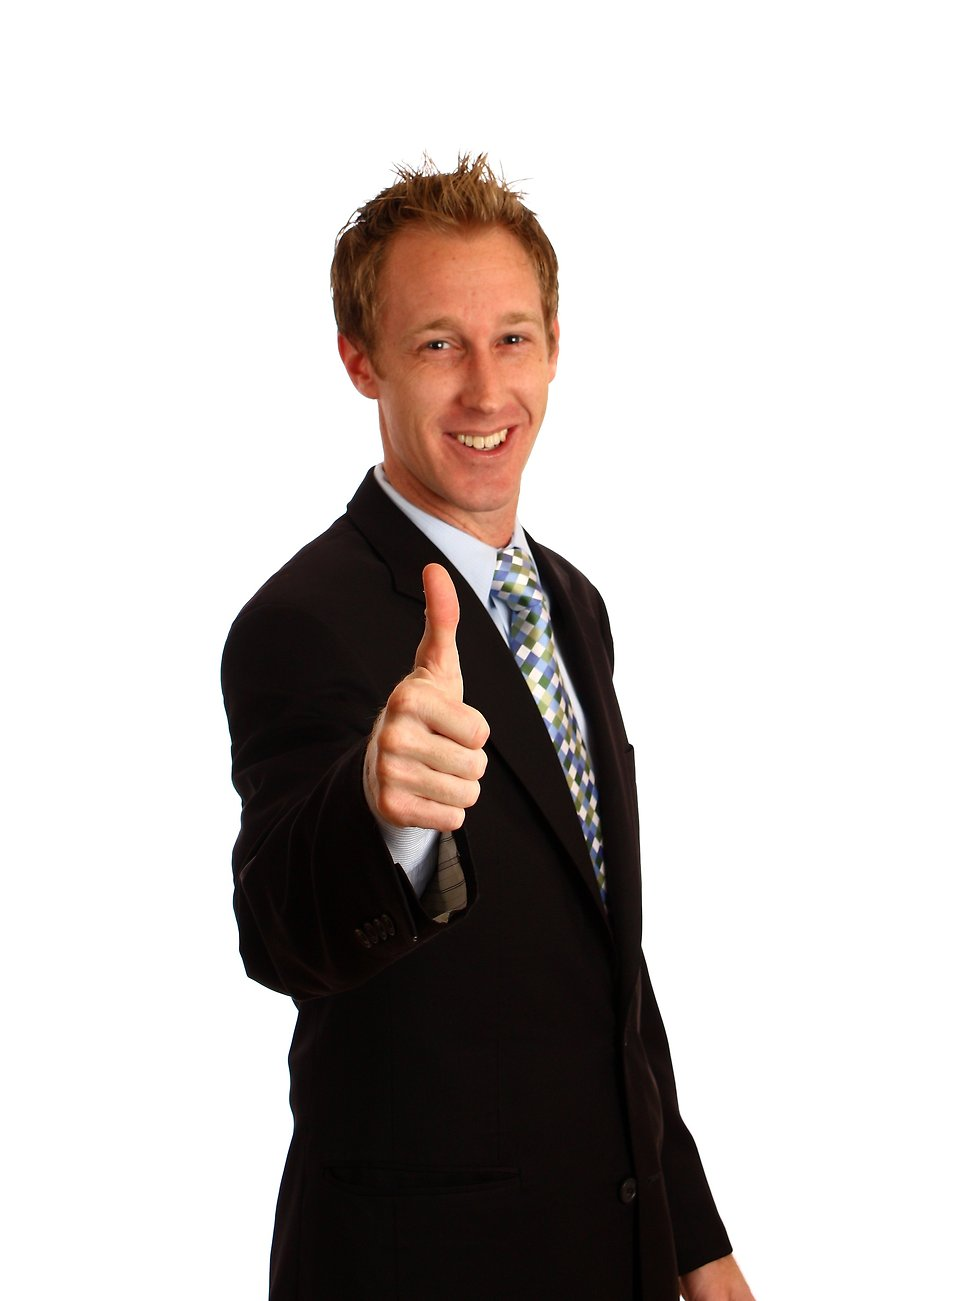 A young businessman giving a thumbs up signal : Free Stock Photo